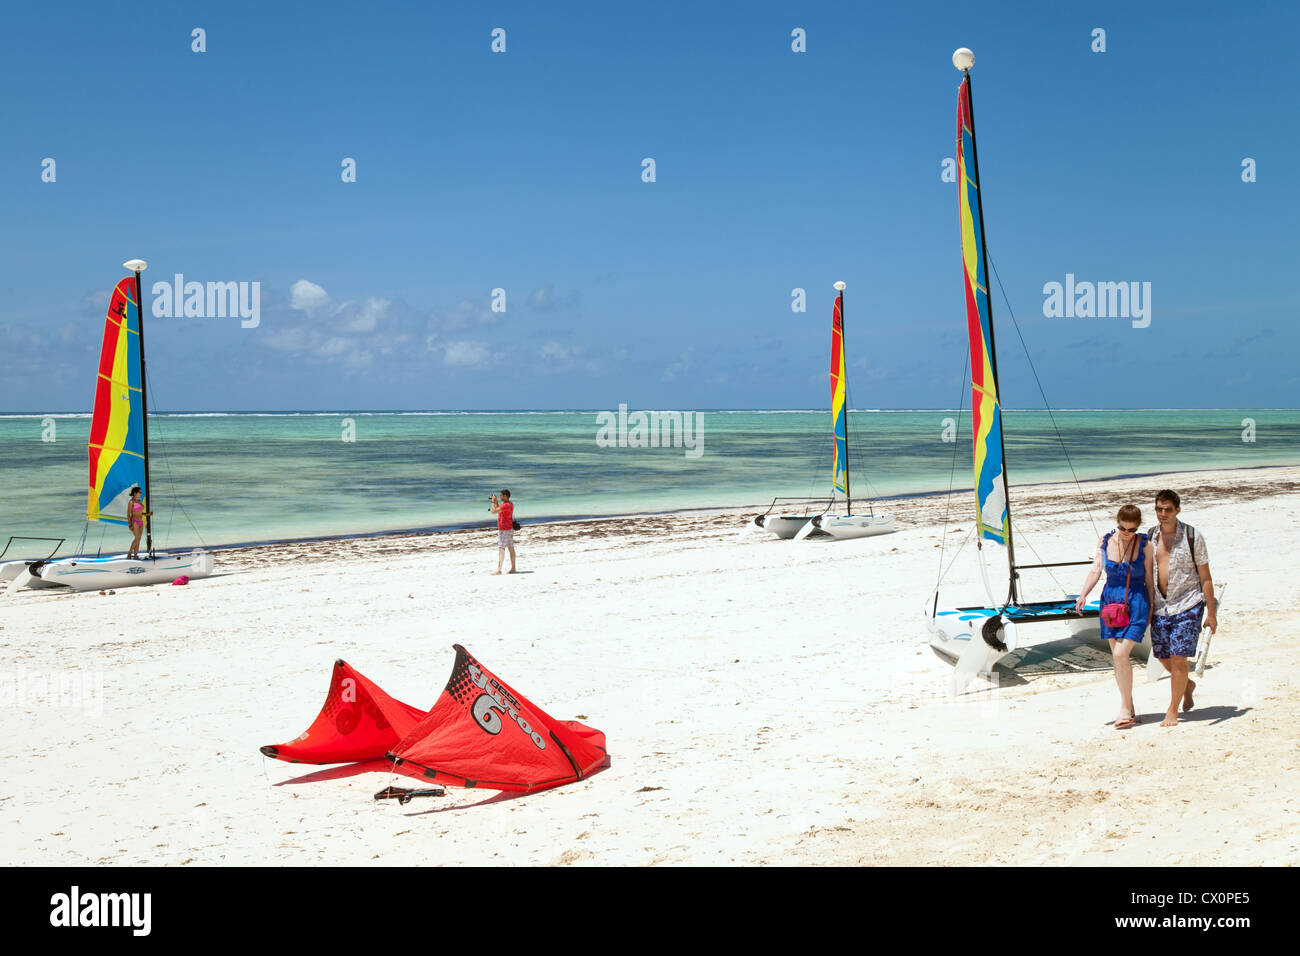 Watersports on Bjewuu beach, Zanzibar Tanzania Africa - Stock Image